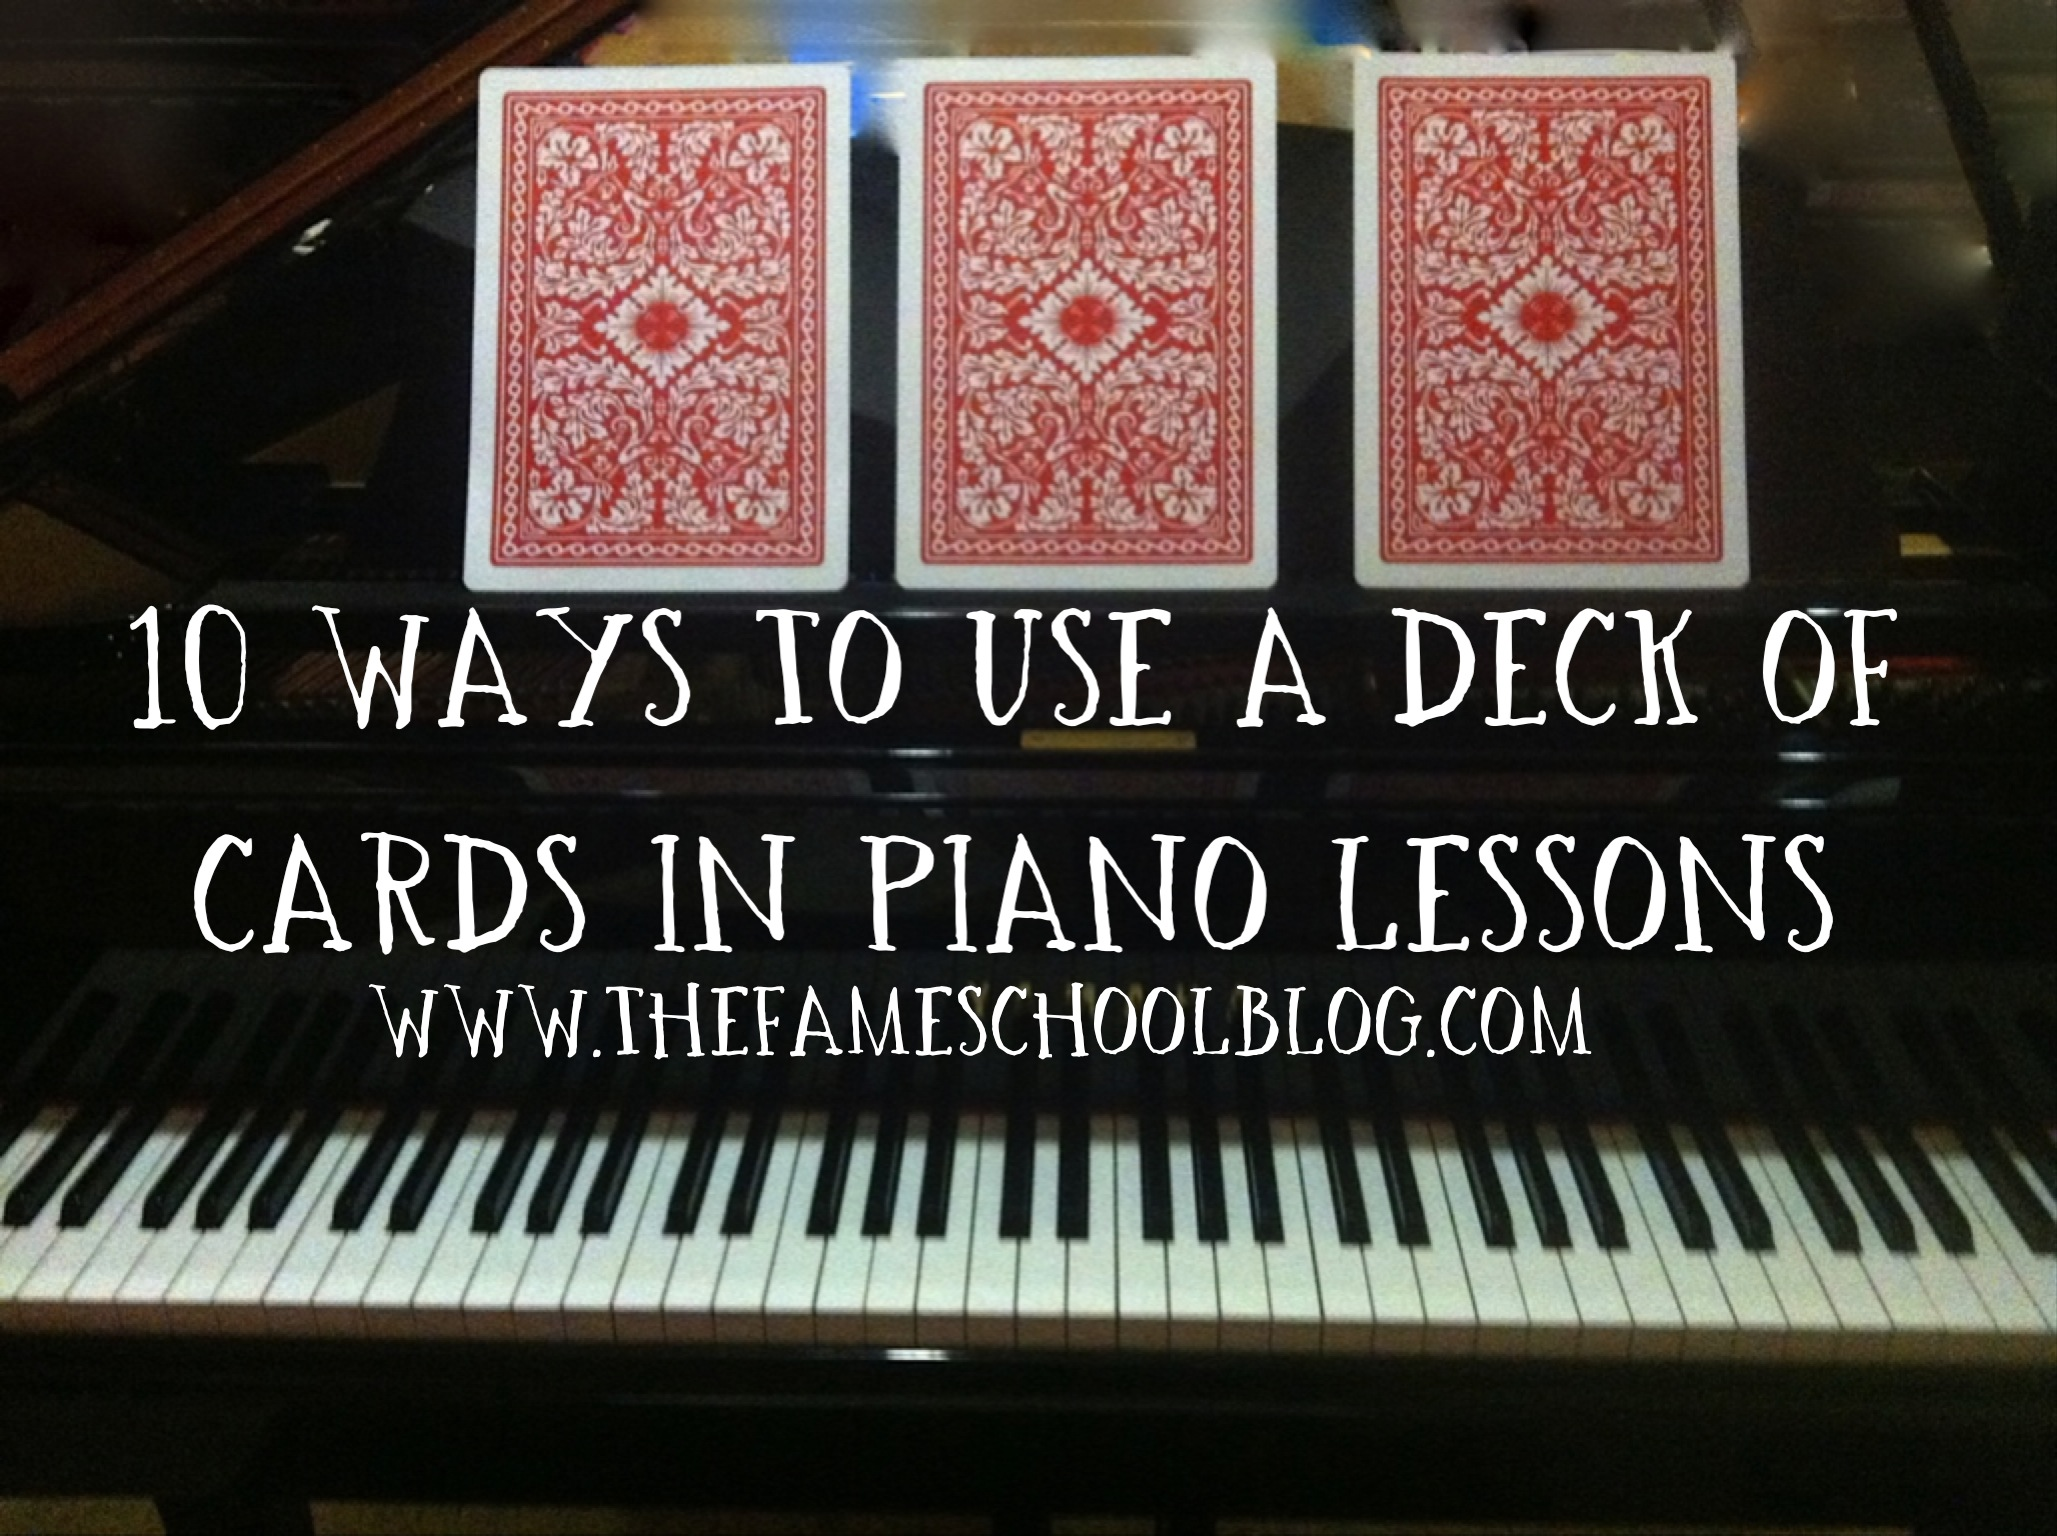 10 Ways To Use A Deck of Cards In Piano Lessons